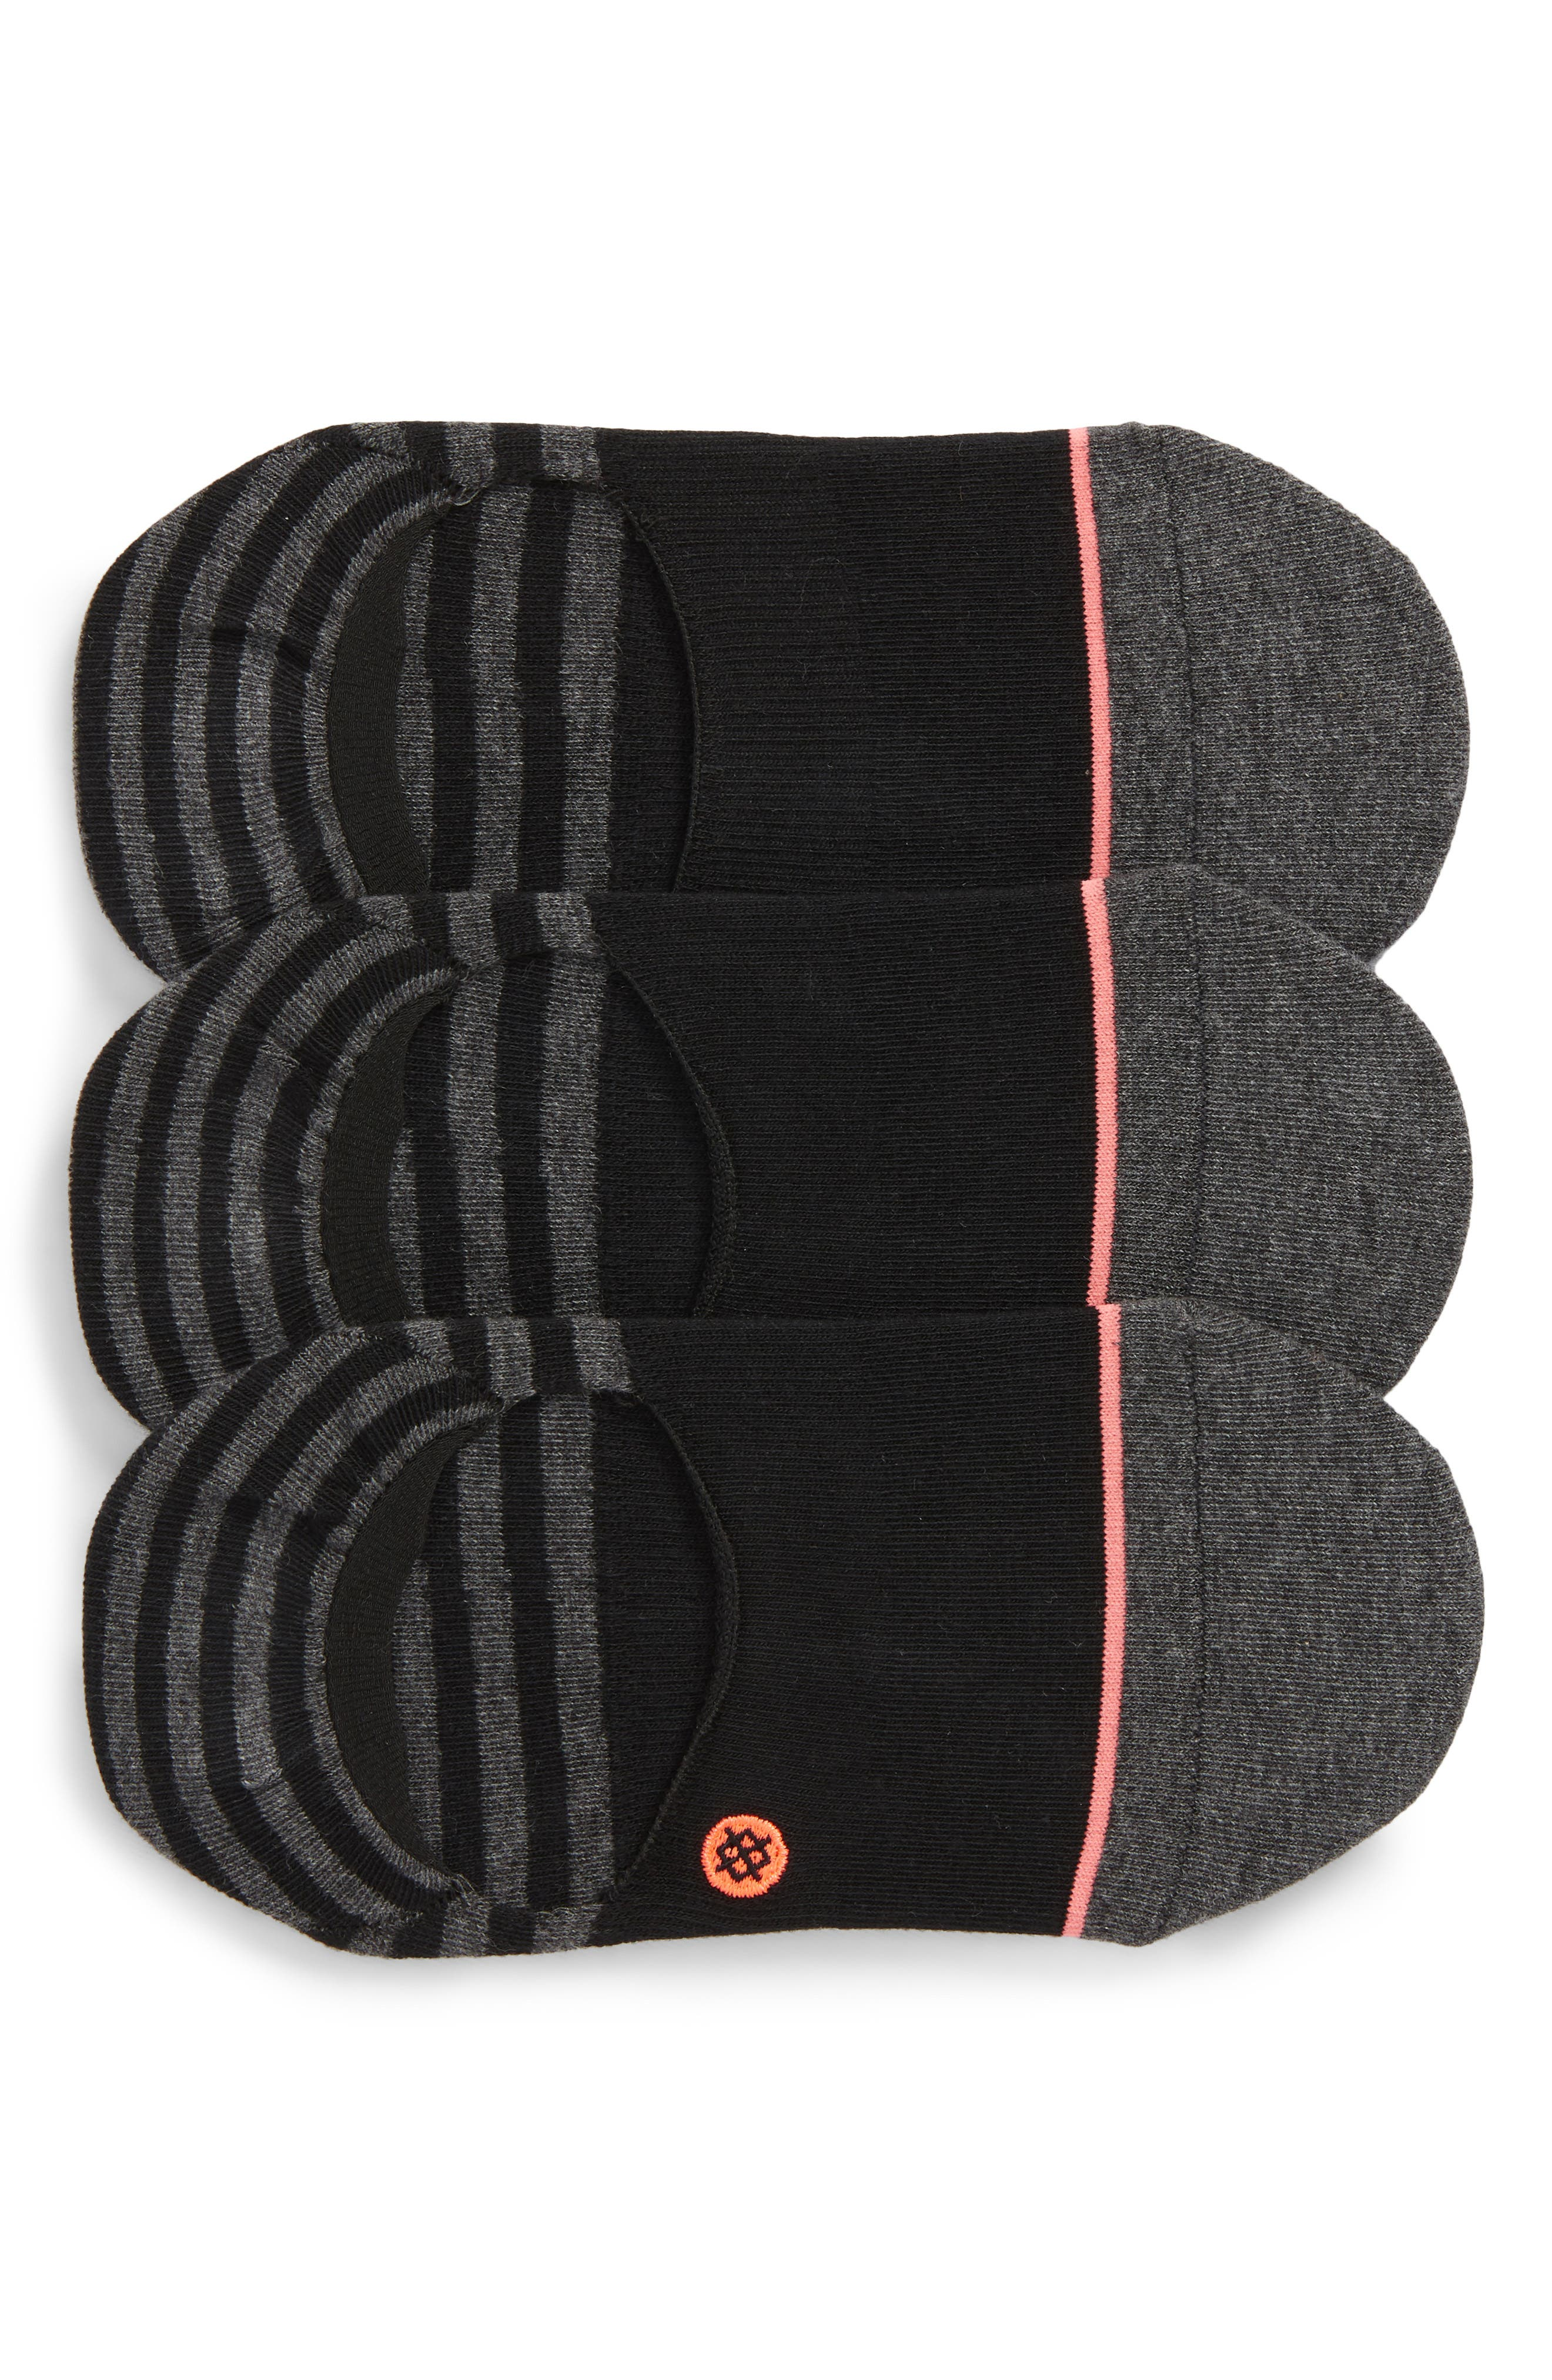 Main Image - Stance Invisible 3-Pack No-Show Socks